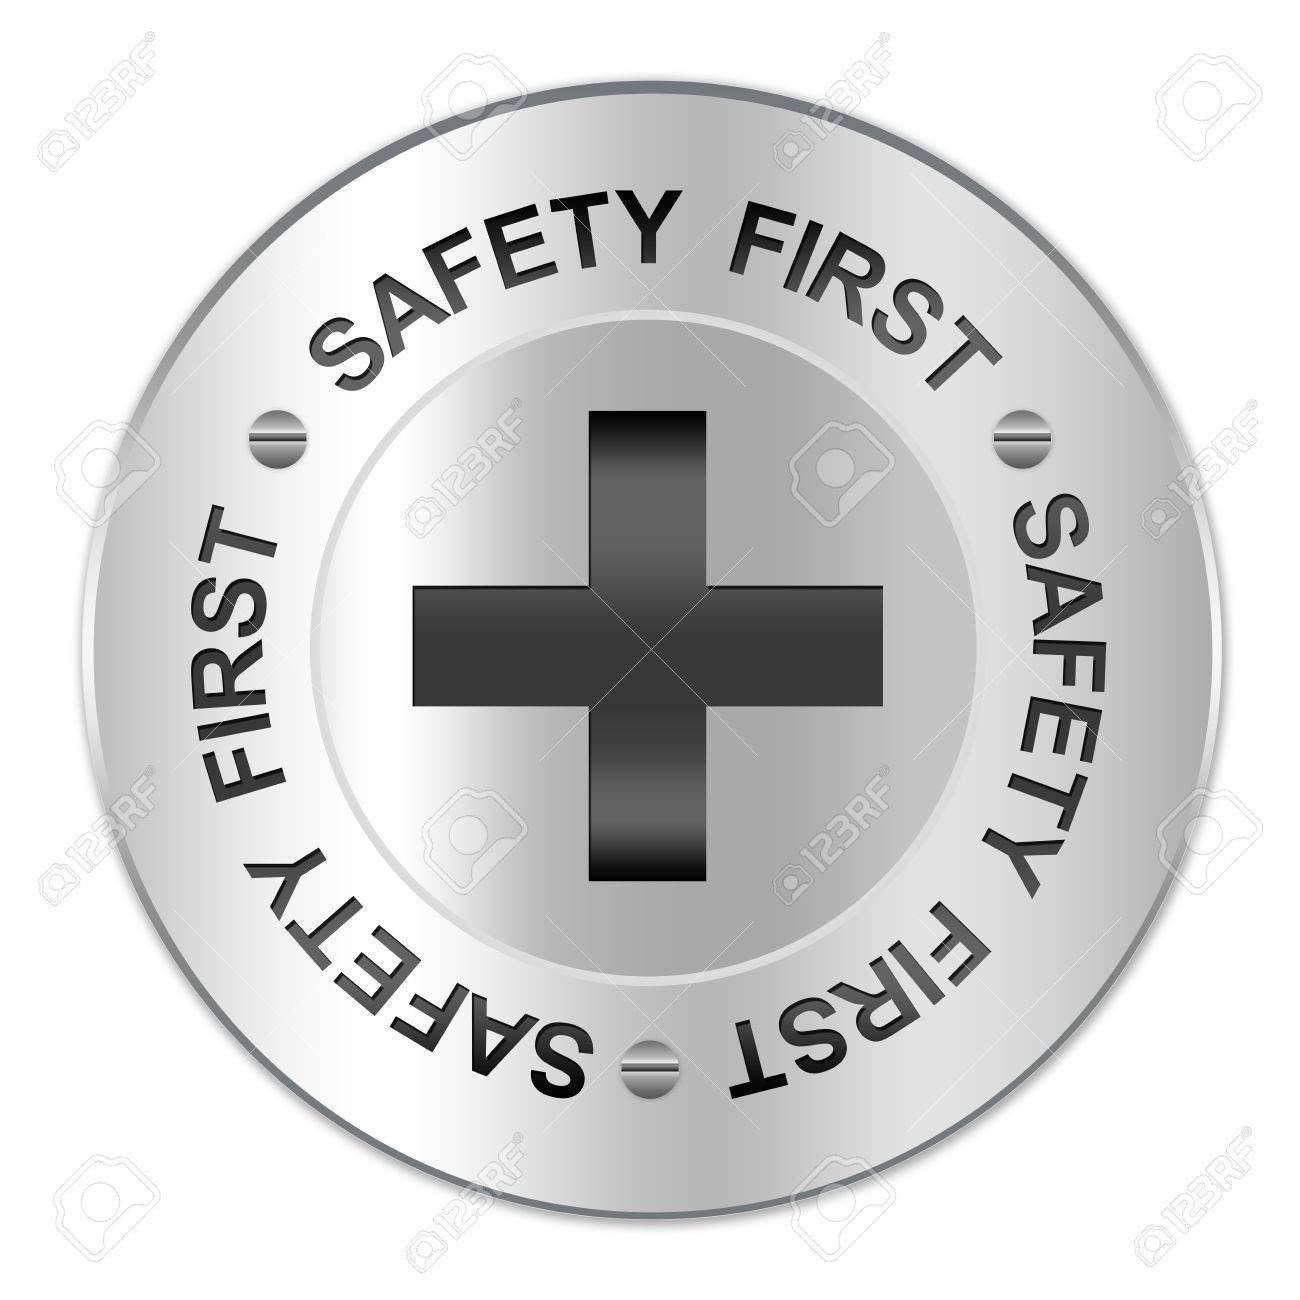 Circle Silver Metallic Plate For Safety First Sign With The Cross Inside Isolate on White Background Stock Photo - 17404793